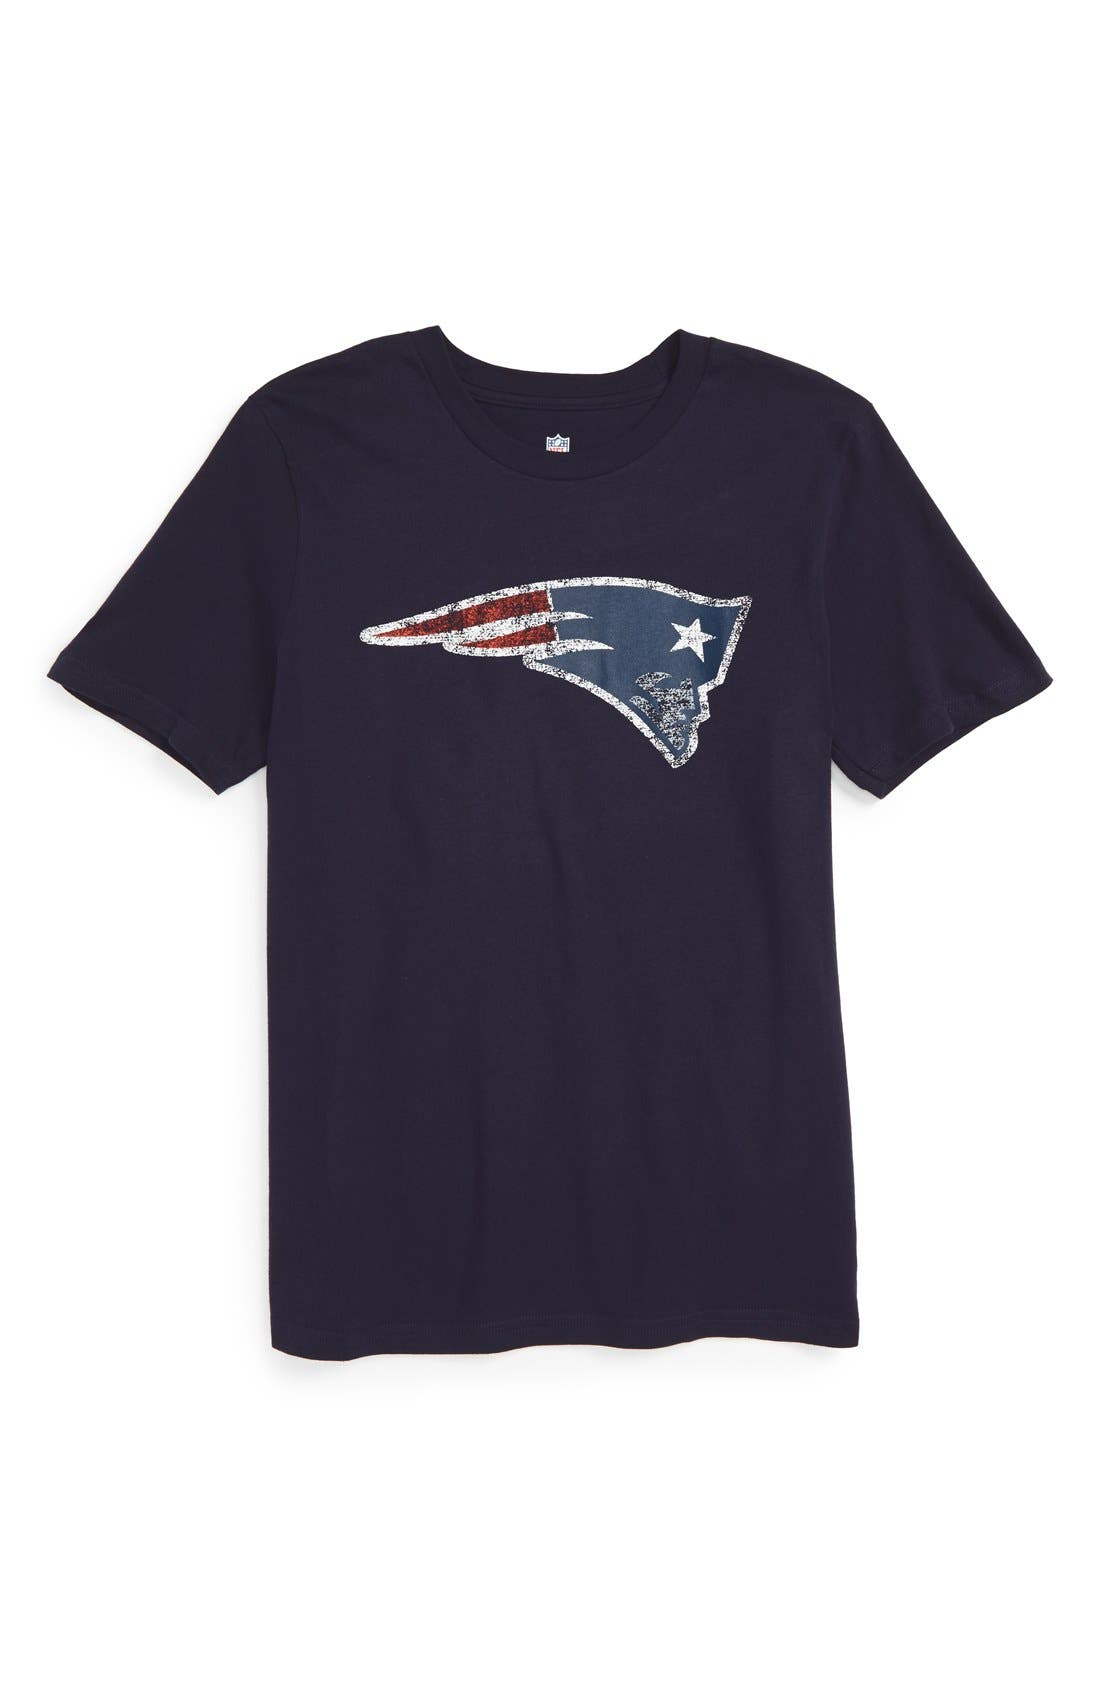 'NFL - New England Patriots' Distressed Logo Graphic T-Shirt,                             Main thumbnail 1, color,